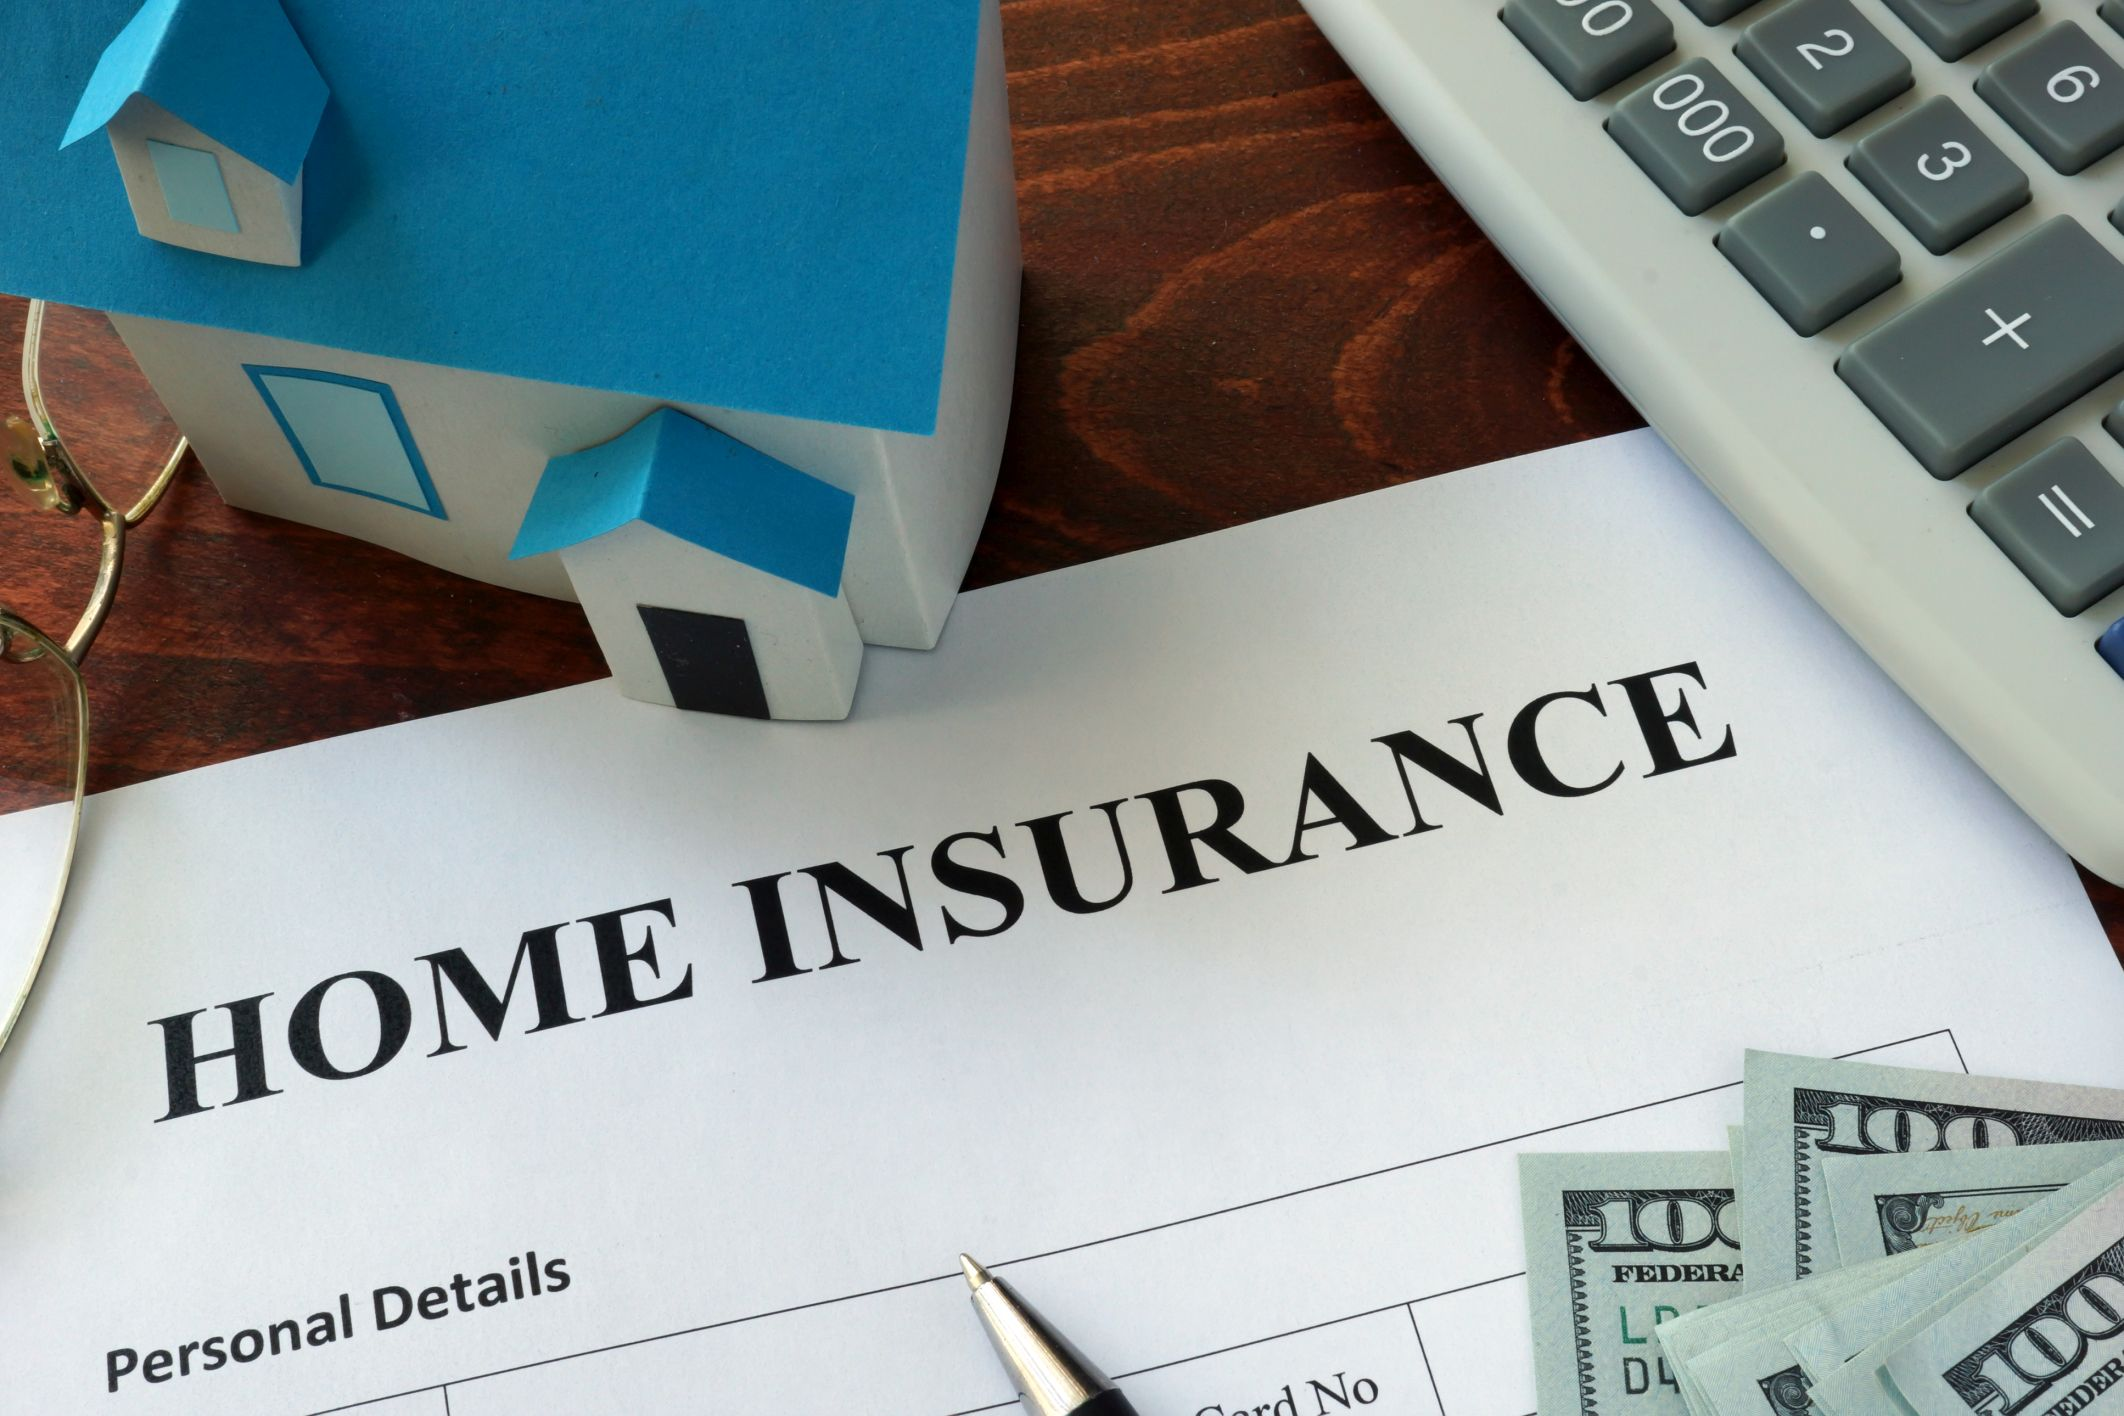 15 home insurance  panies ranked from worst to best by